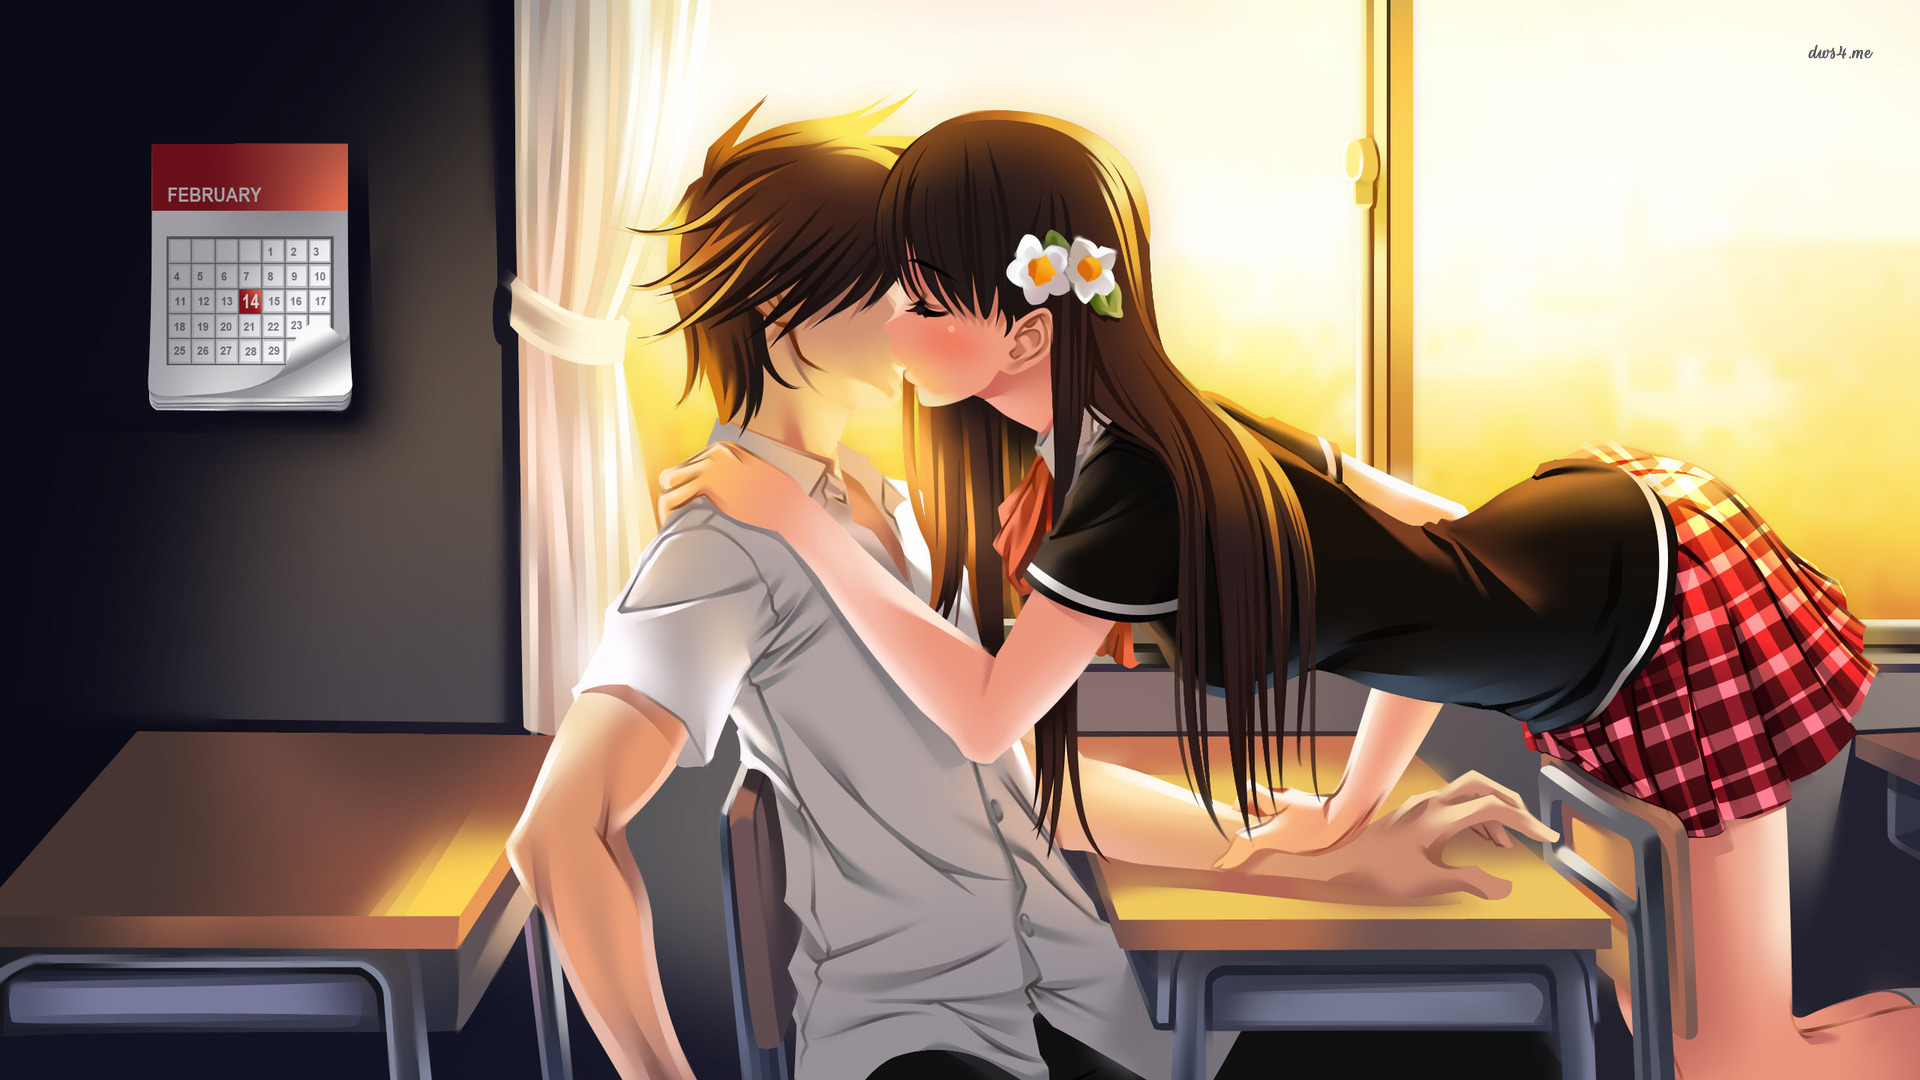 21440-valentines-day-kiss-1920x1080-anime-wallpaper